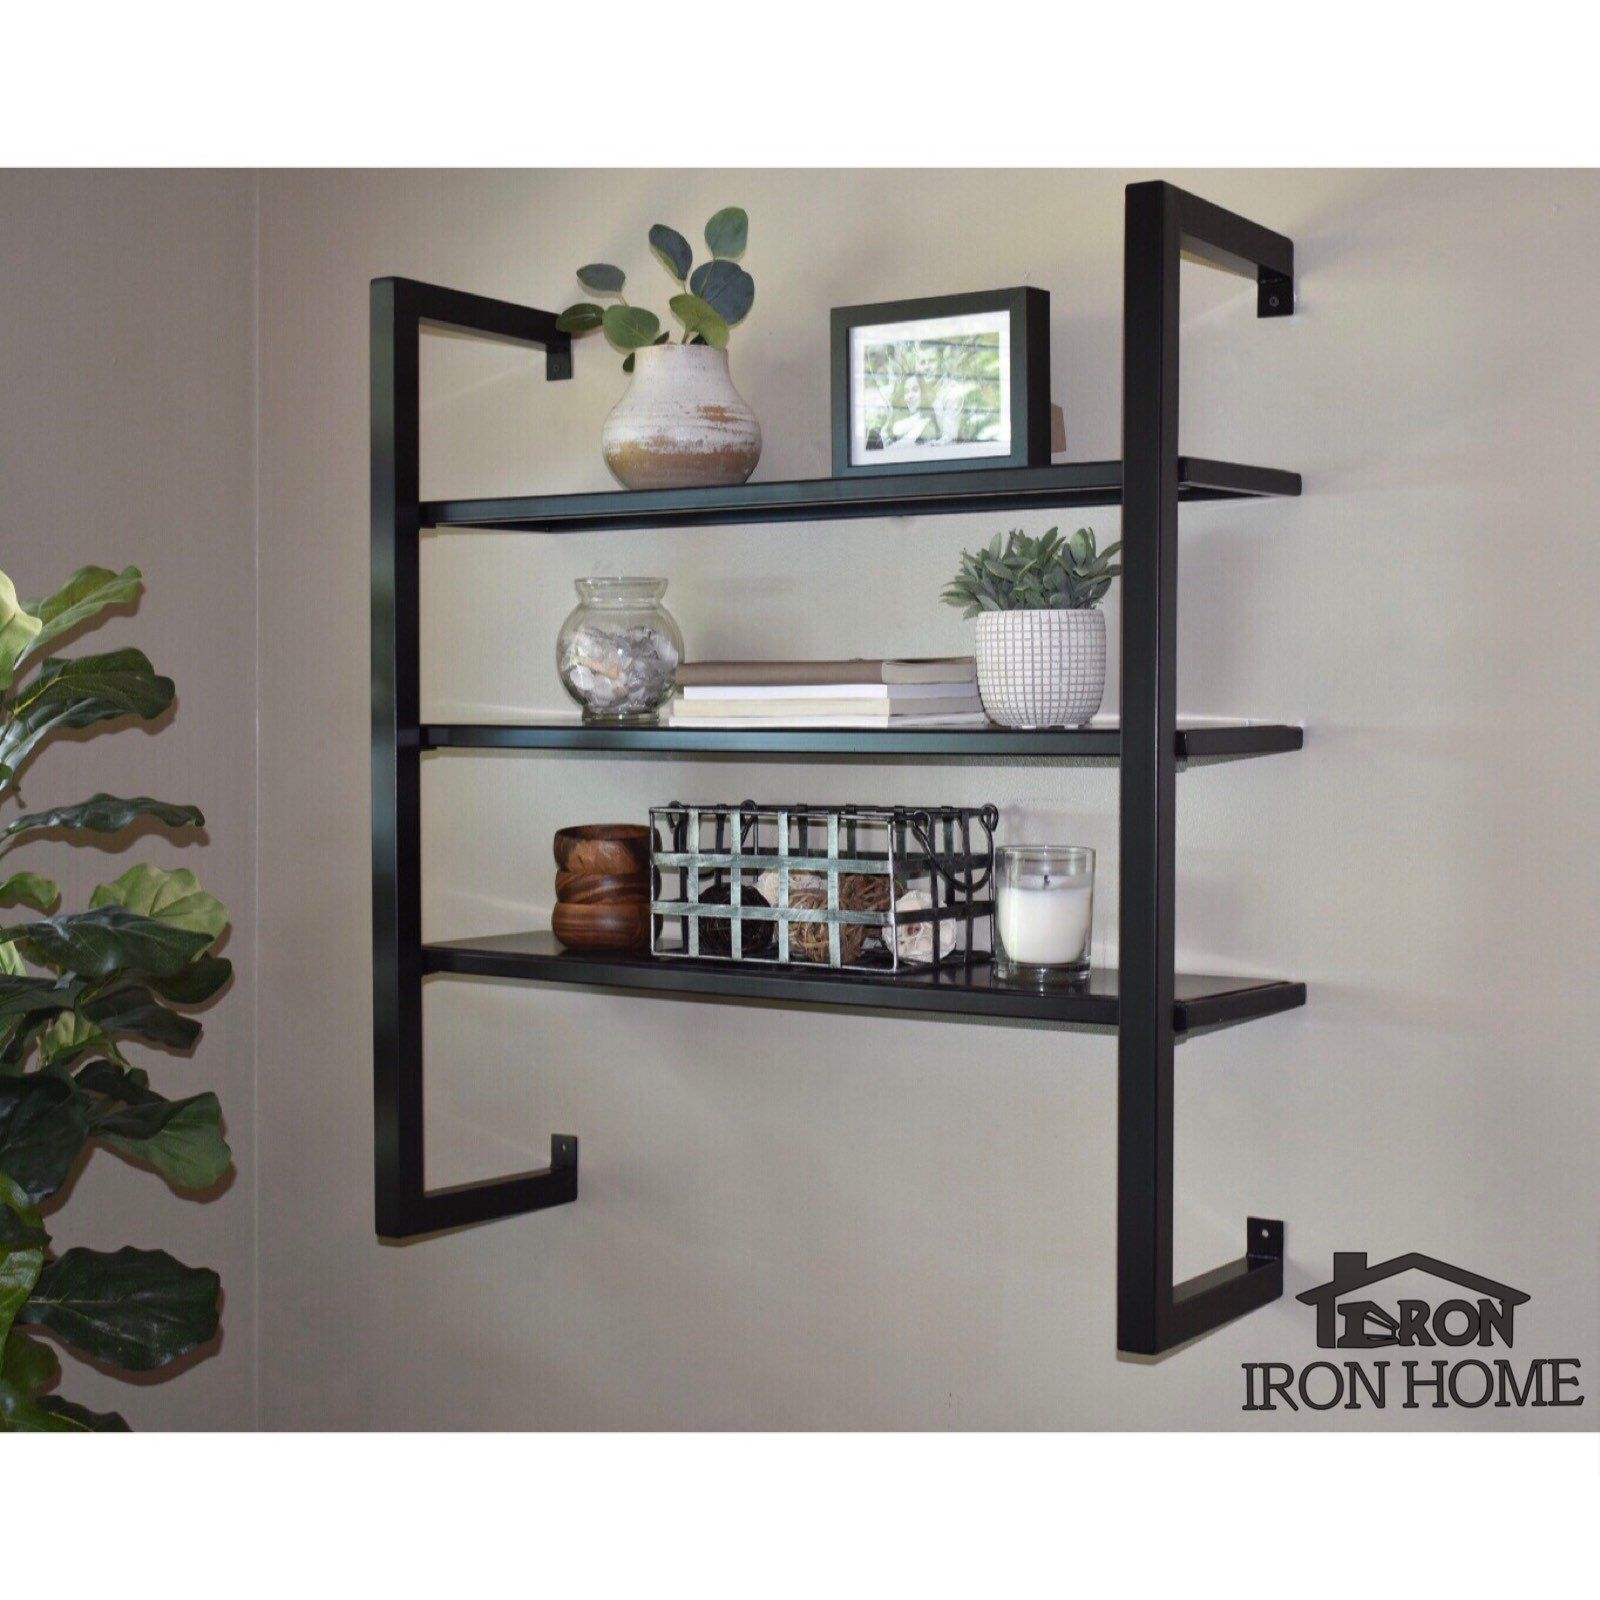 Framed Metal Floating Shelves 12 Spacing Steel Shelves Iron Shelves Floating Metal Shelf Shelve Metal Storage Shelves Floating Shelves Living Room